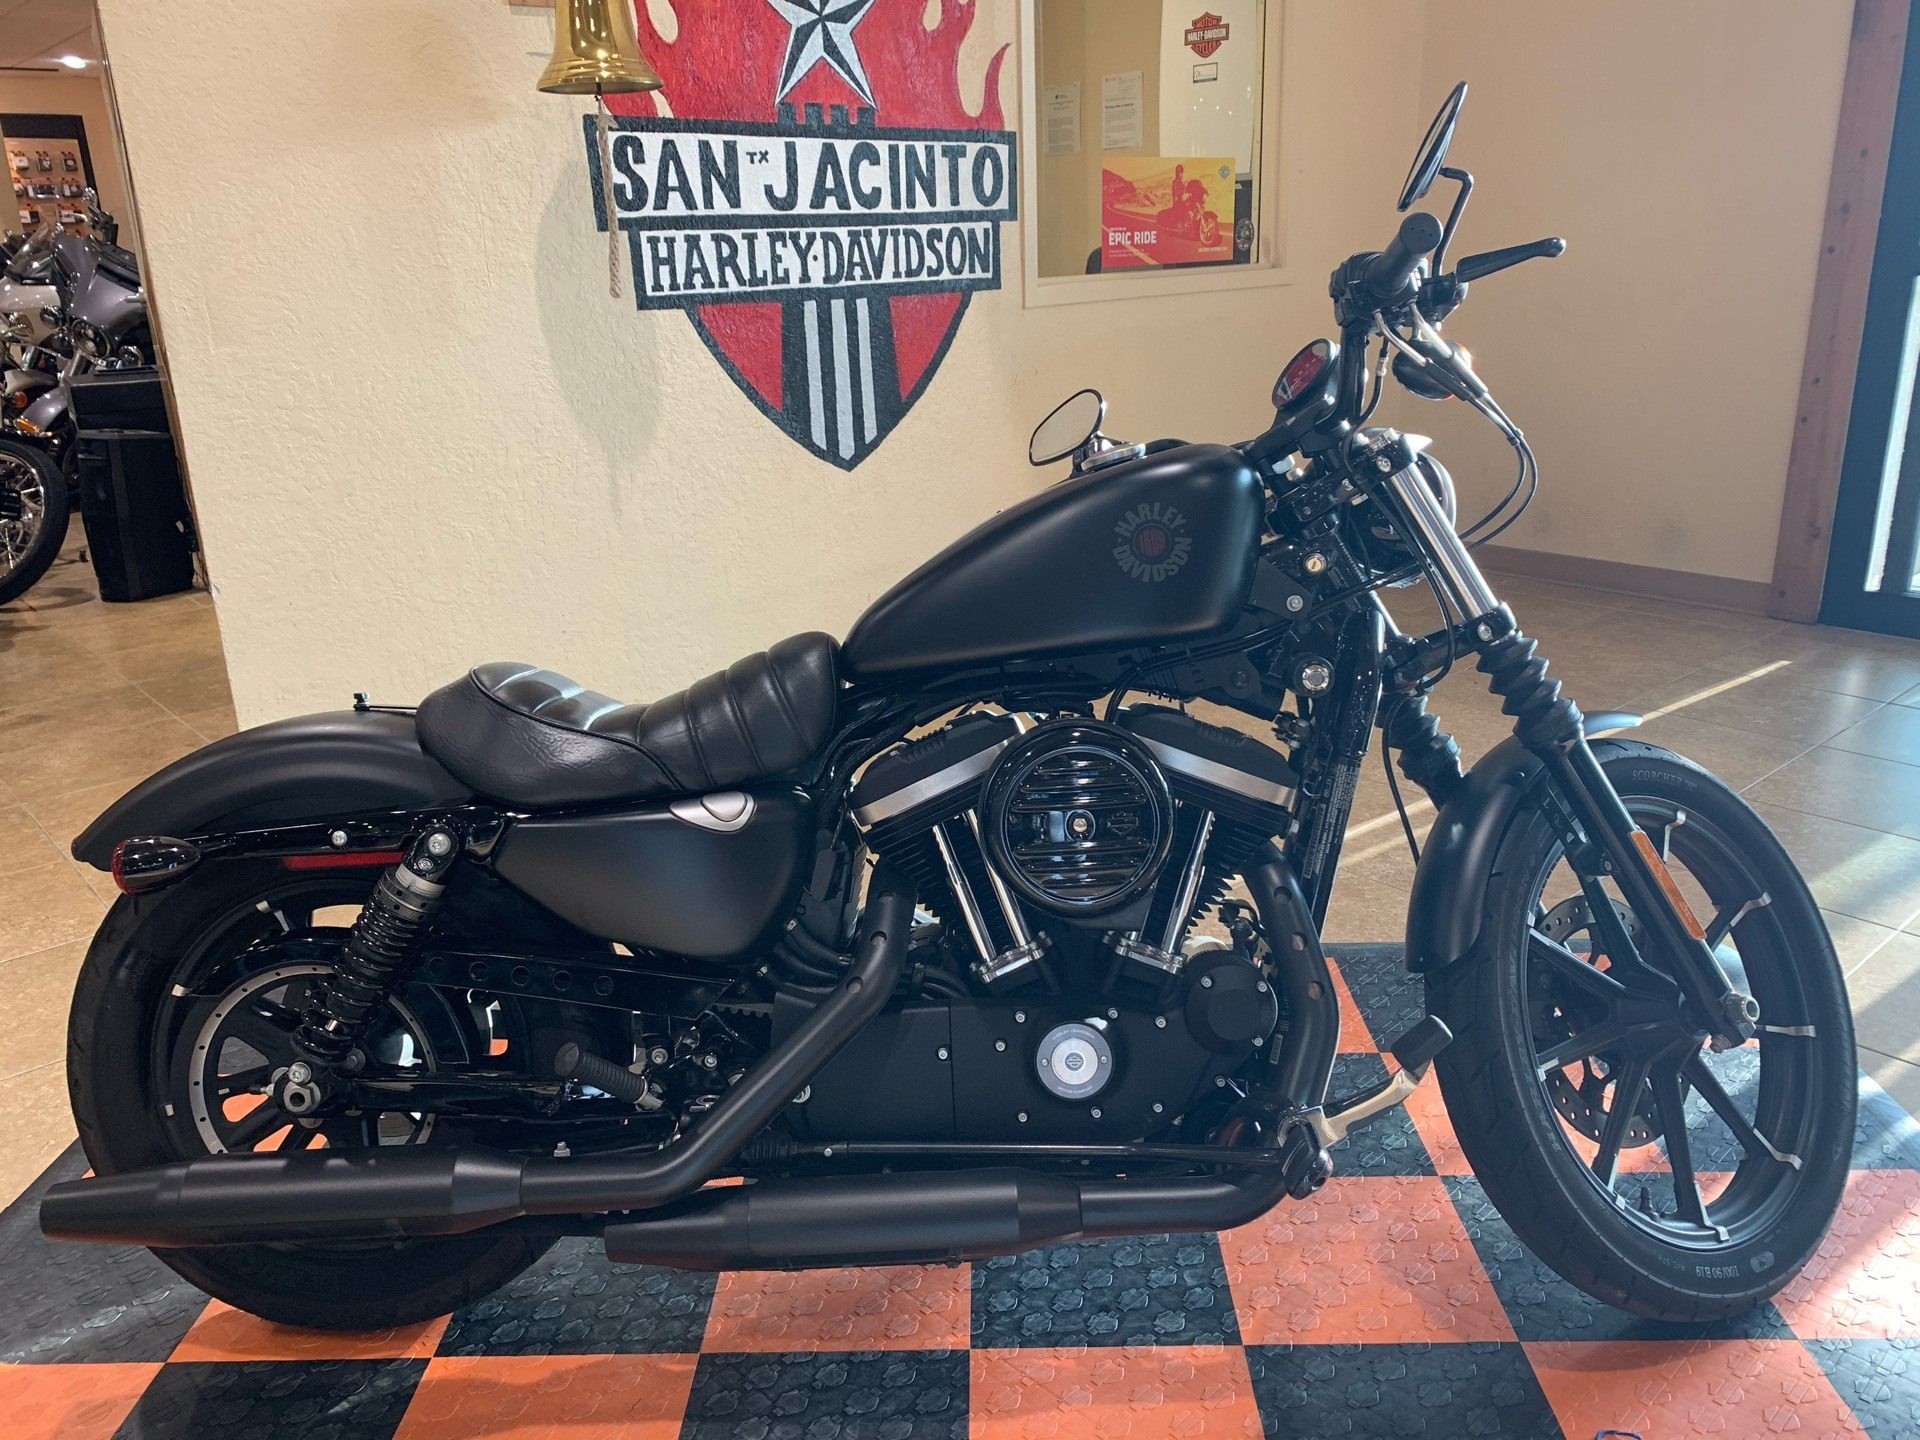 2019 Harley-Davidson SPORTSTER 883 in Pasadena, Texas - Photo 1